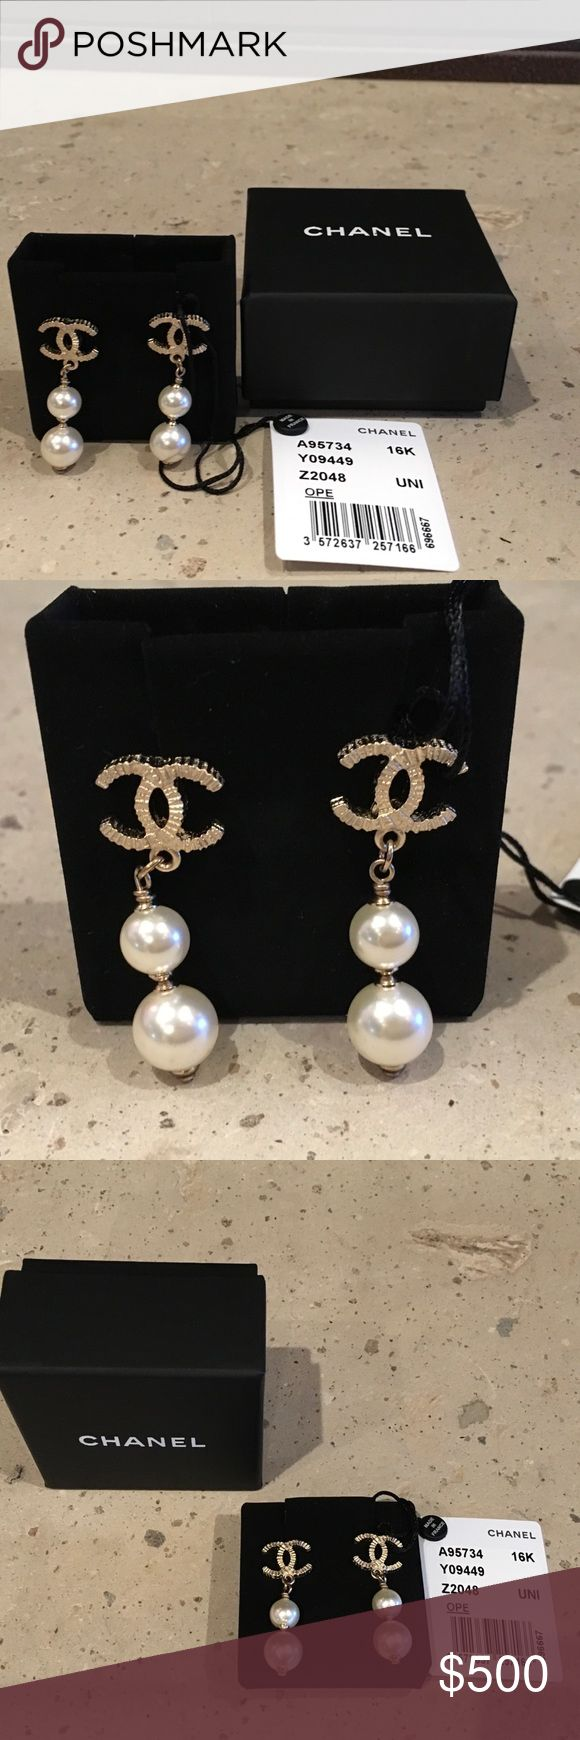 Chanel Earrings NIB/NWT. Chanel Gold Tone CC's with Two Drop Pearls. These Are Elegant, Refined and Classic Chanel. Never Worn. Pristine Condition. Includes Box, Pouch, and Retail Tag. Price Firm. CHANEL Jewelry Earrings